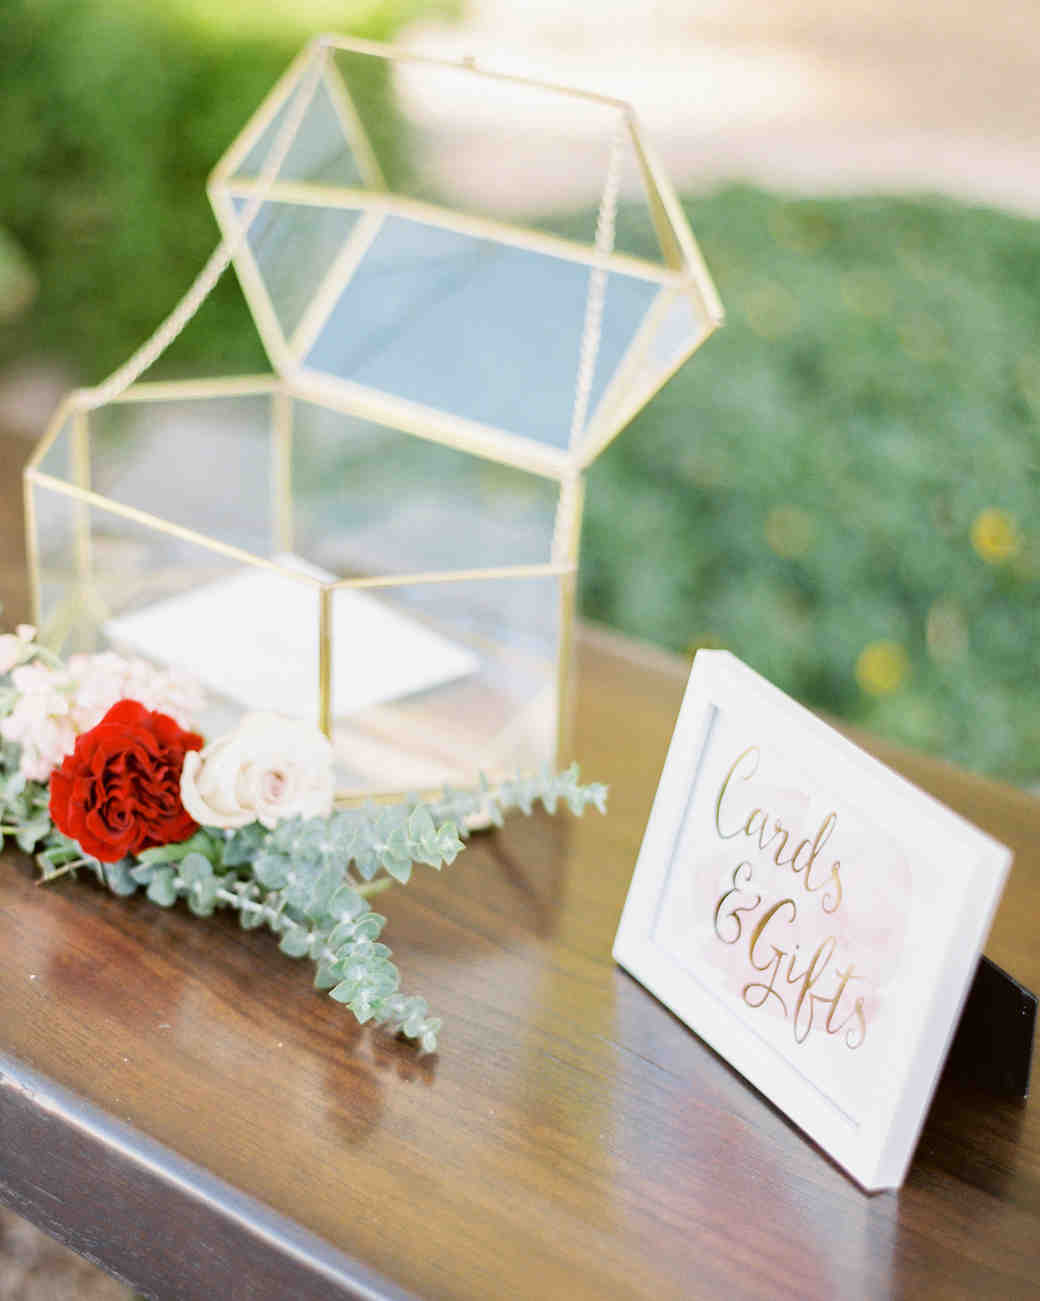 How to Collect Cards at Your Wedding How to Collect Cards at Your Wedding new picture